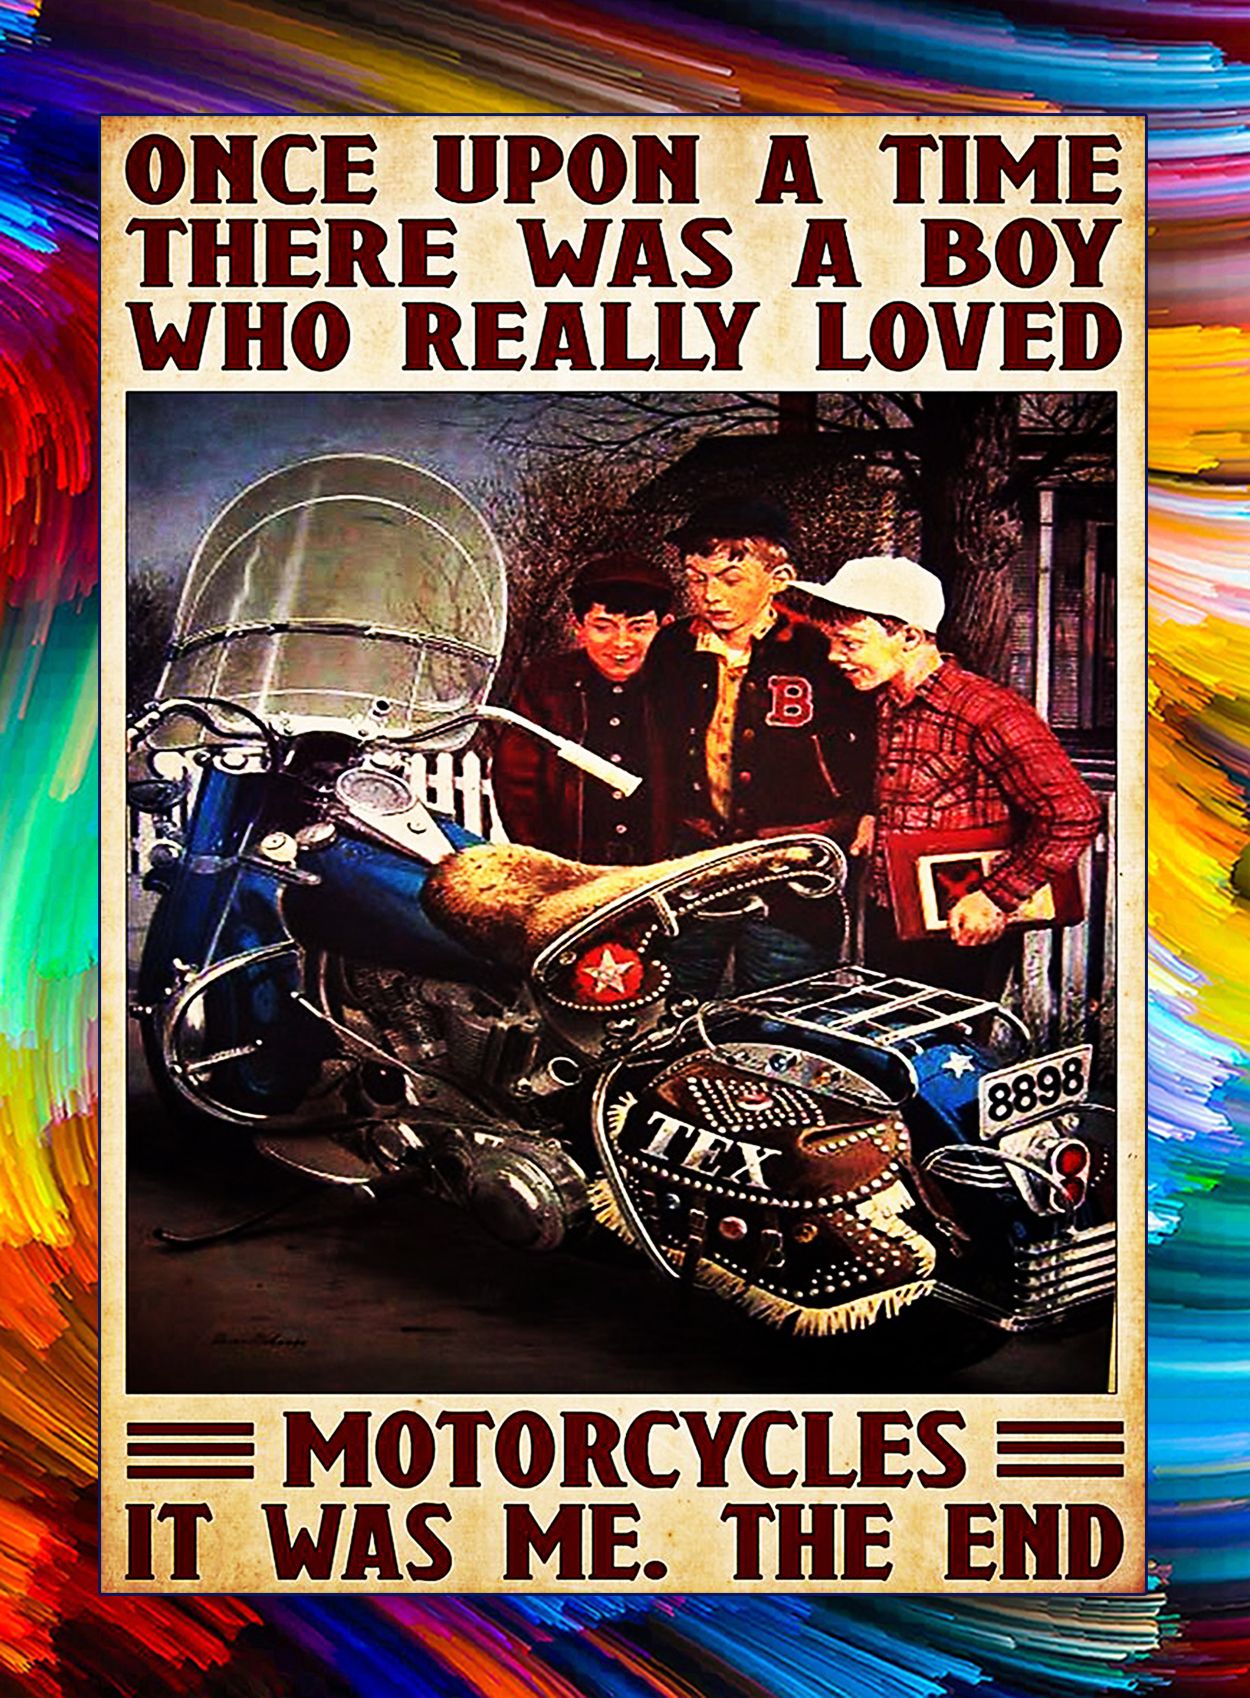 Once upon a time there was a boy who really loved motorcycles poster - A2